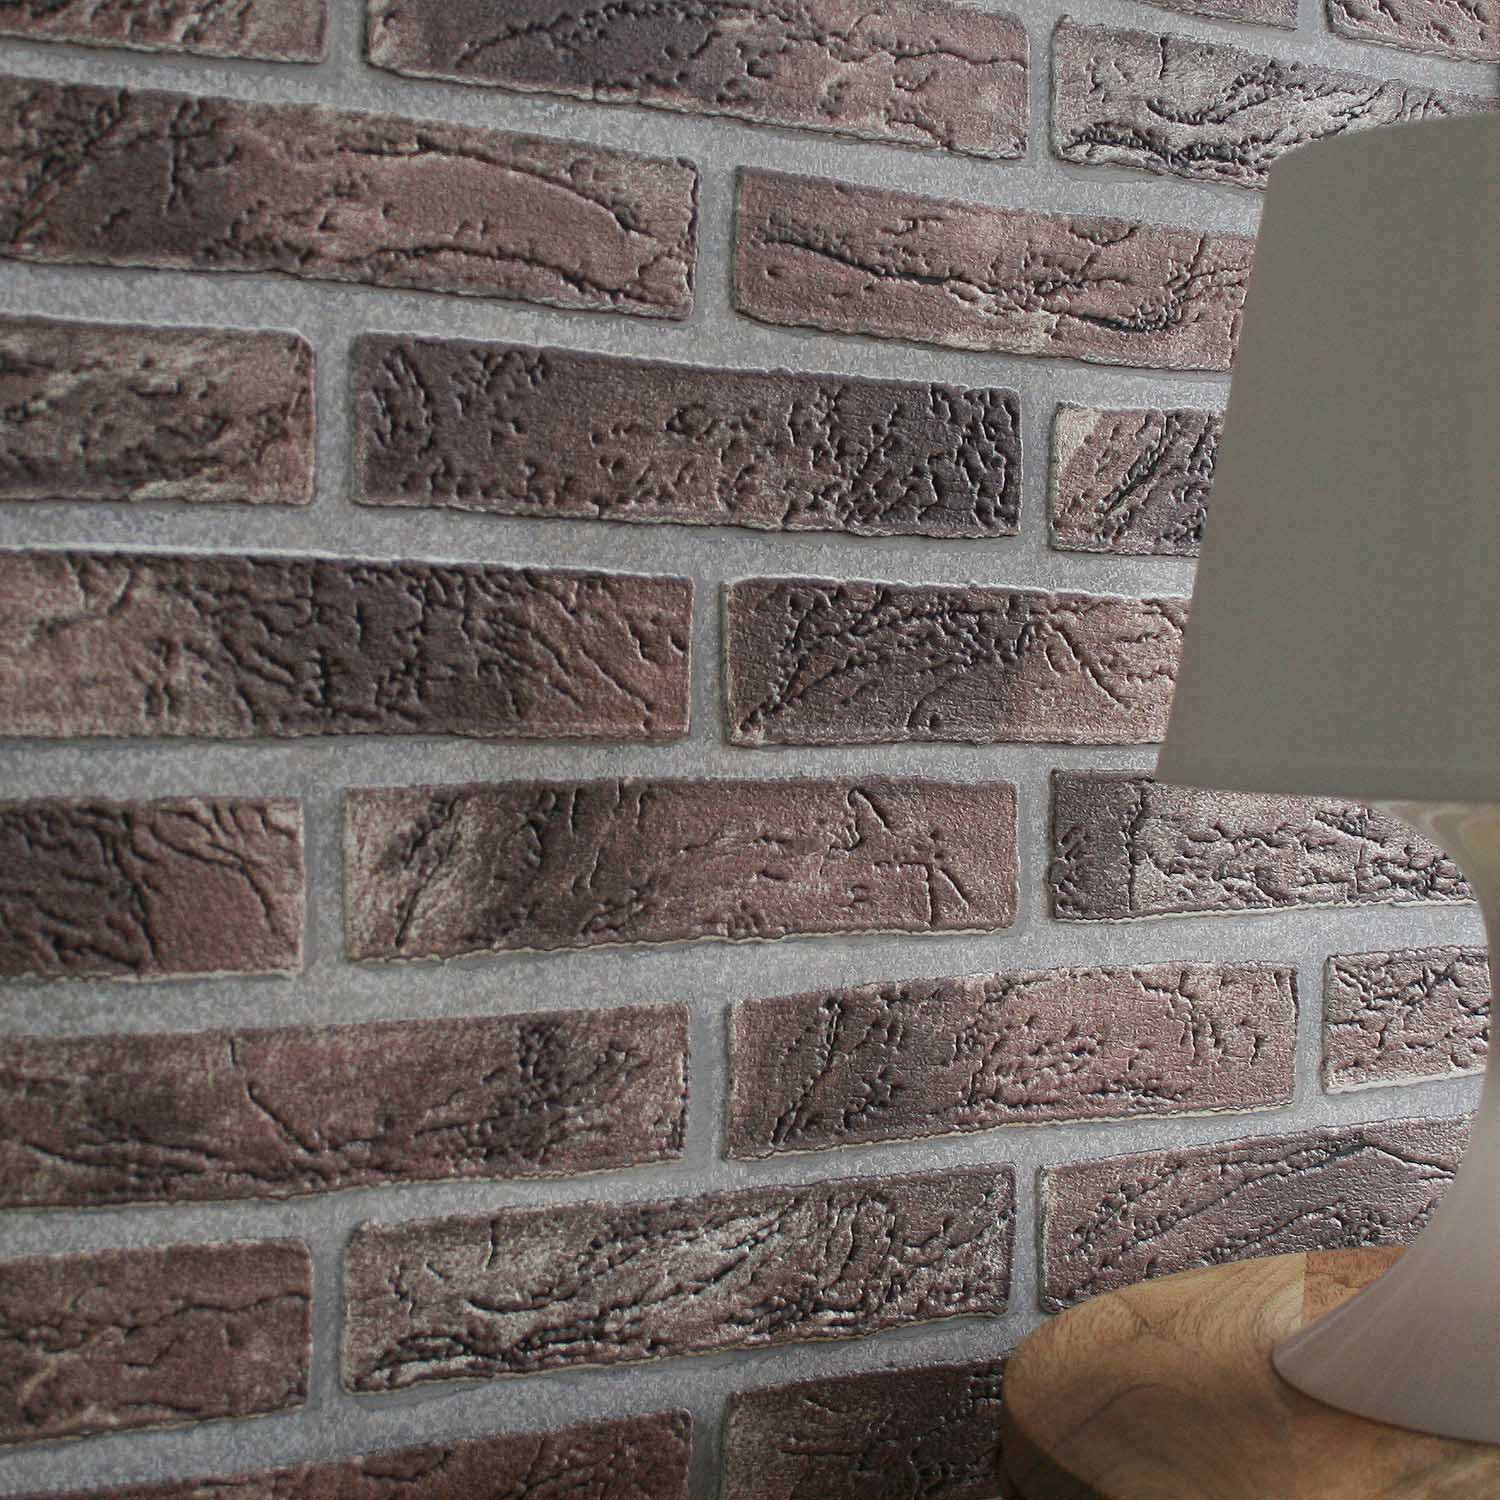 House Brick | 3D Brick Wallpaper Red & Brown Tones